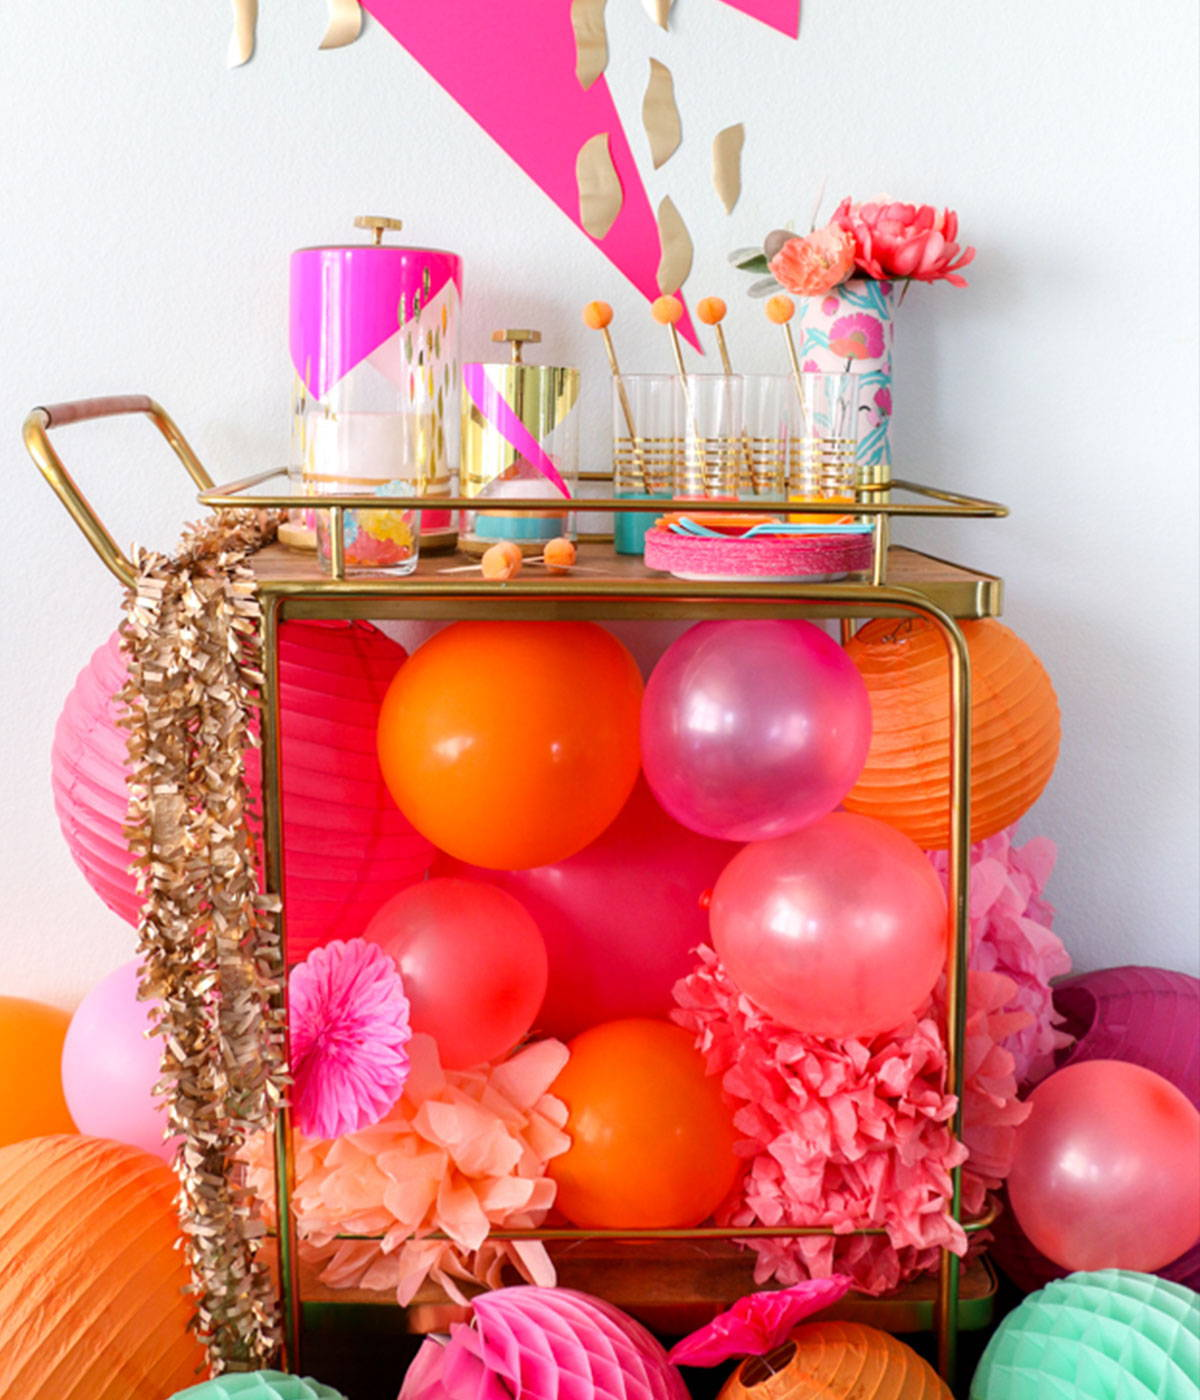 A festive gold barcart with balloons stuffed underneath the first shelf.